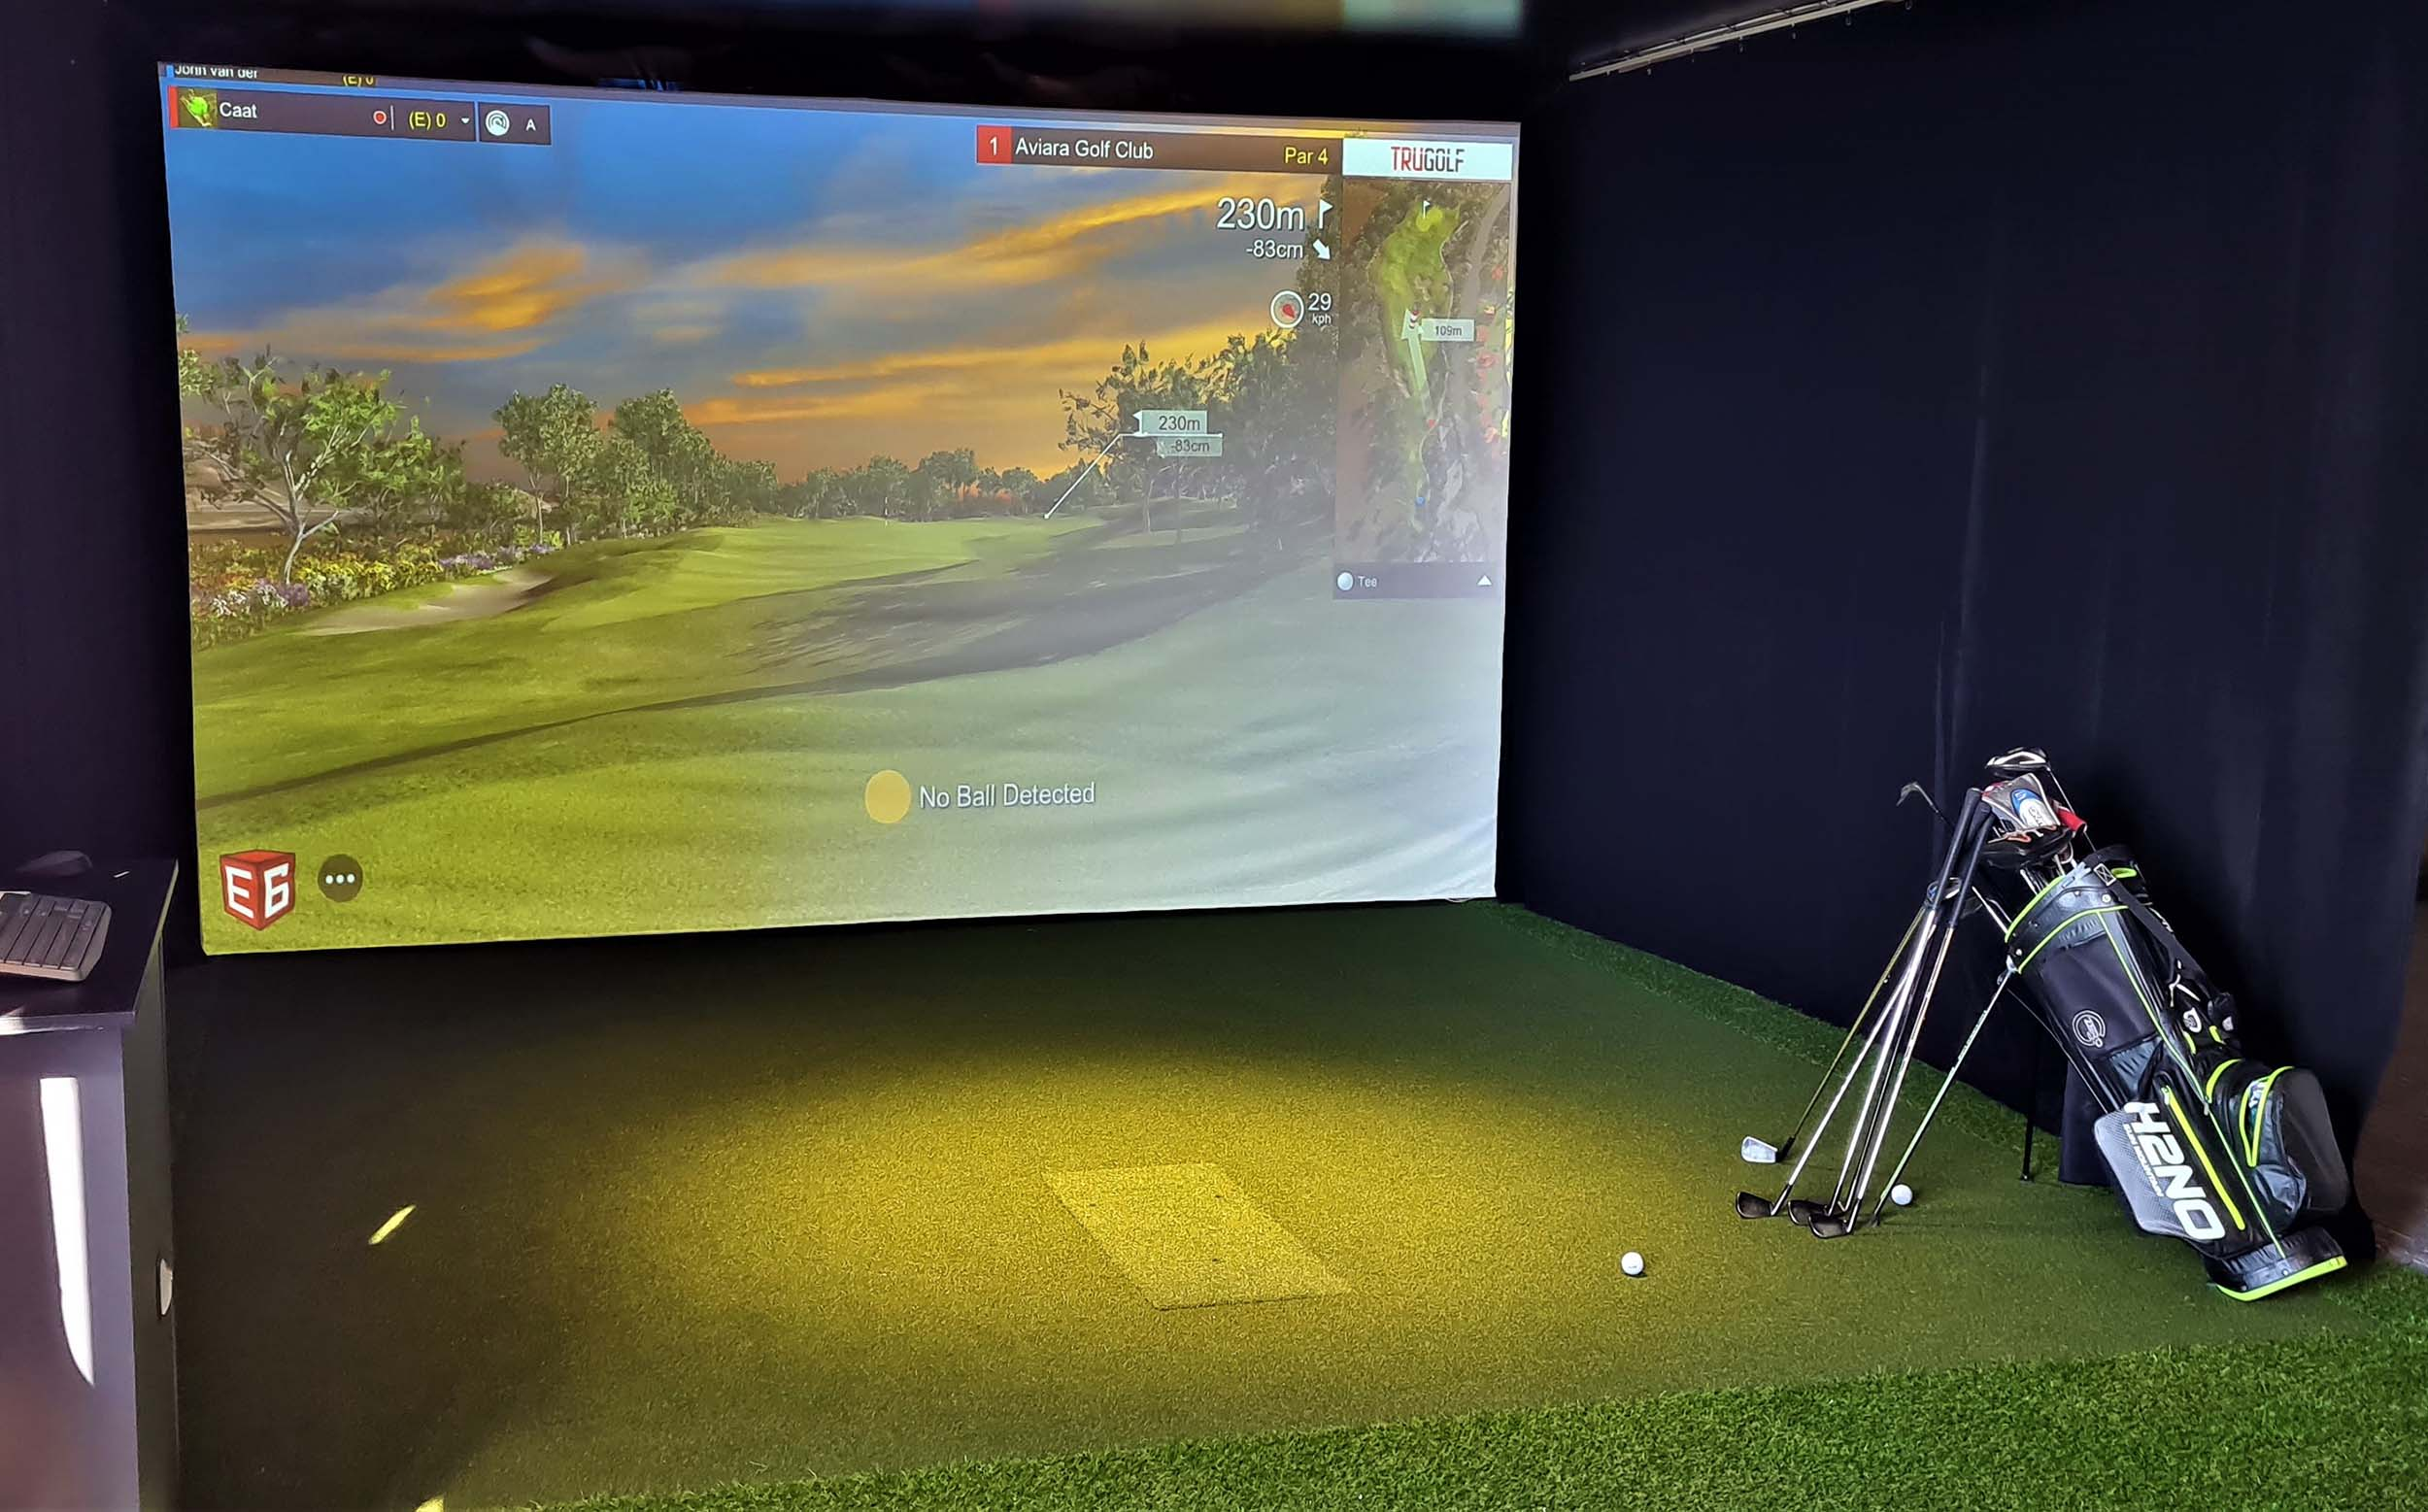 BodiTrak - Pressure Mat,focusband, SAM PuttLab, Golfstudio inrichting, Racesimulator, Golfnetten, pokerstance, Putting Stick, planeSwing,putting greens, Afslagmatten, Flightscope x3, The NetReturn, Simulator kooi op maat, Standaard simulator kooi, e6 golfconnect, skytrack, flightscope, x3 simulator, putt simulator (exputt) sportscoach systems, trugolf, Dutch Golf Company, indoorgolf, golfsimulator, golfprofessional, Goirle, Eindhoven